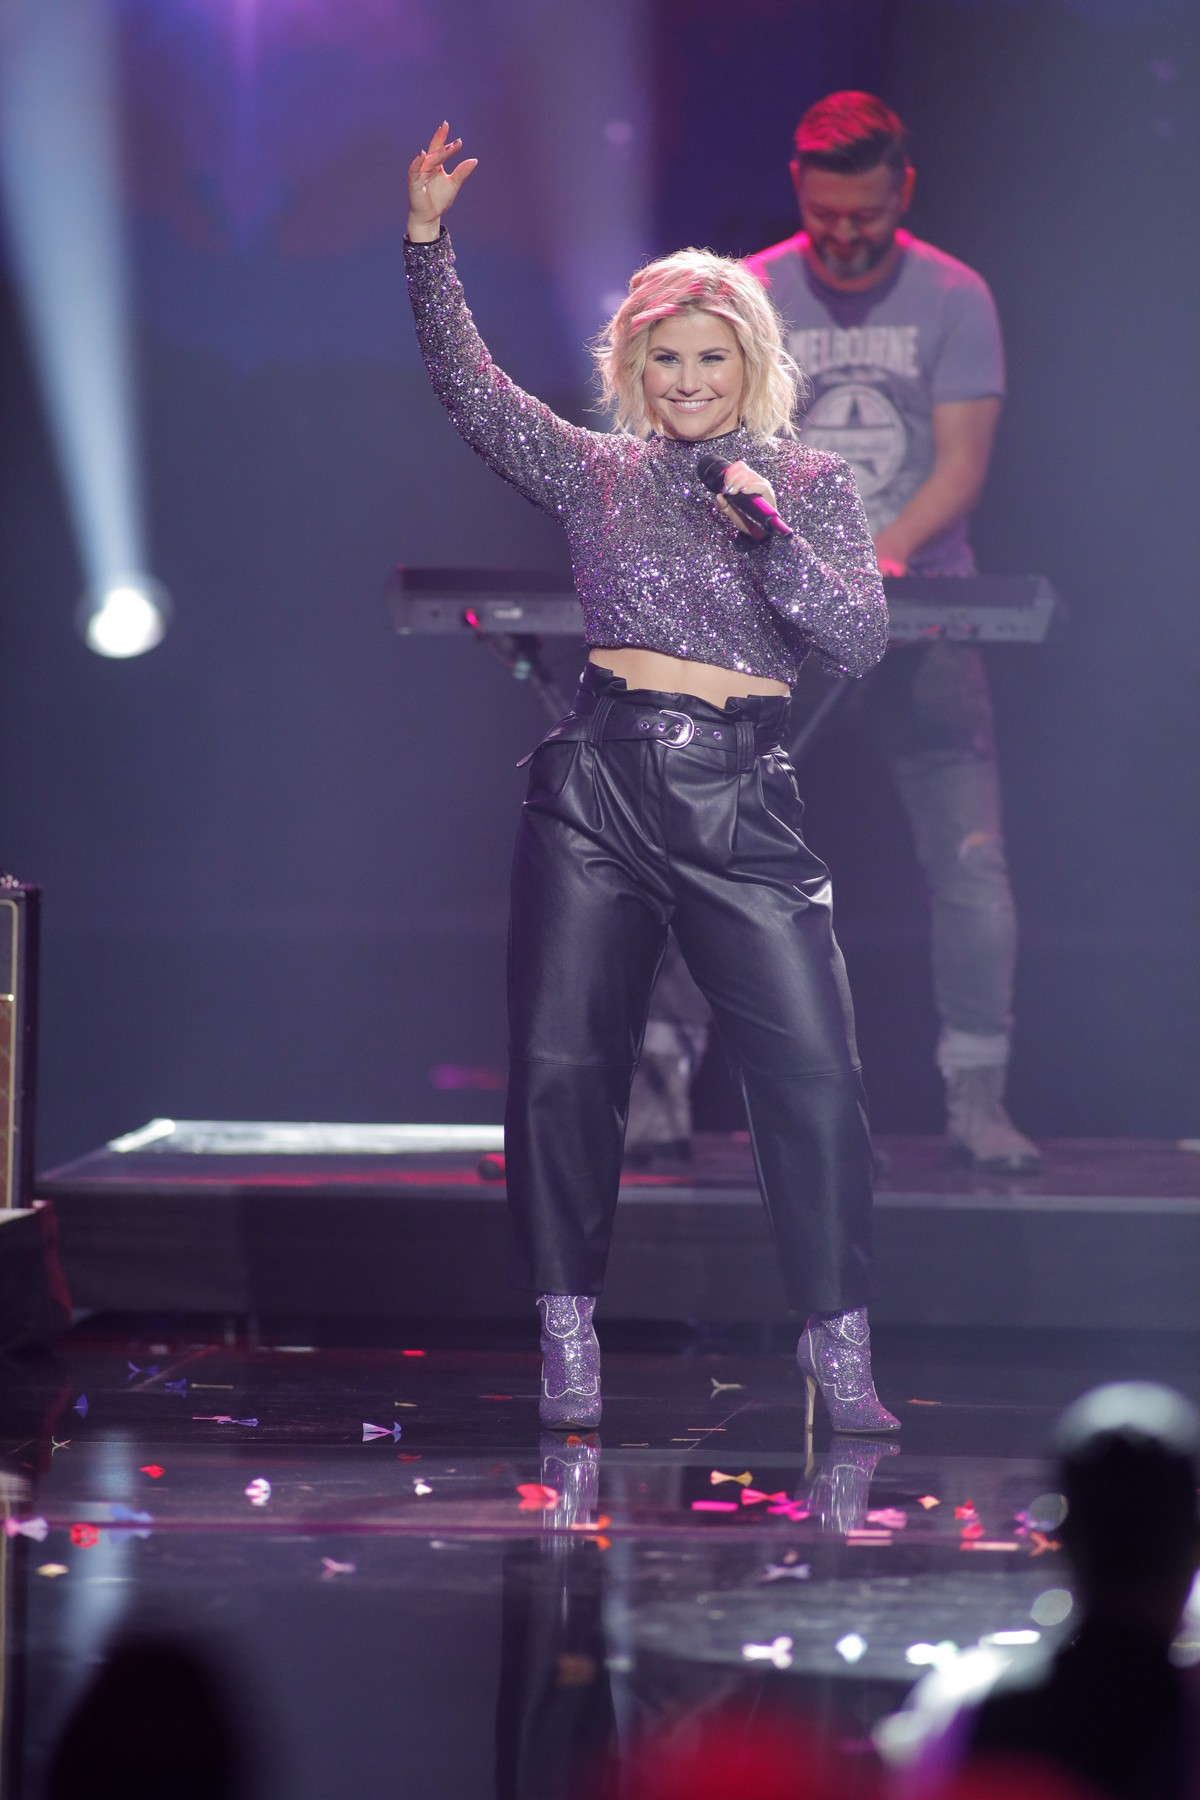 Beatrice Egli performs at Silvestershow 2019: Die Silvestershow mit Jorg Pilawa, 2019/11/15 9